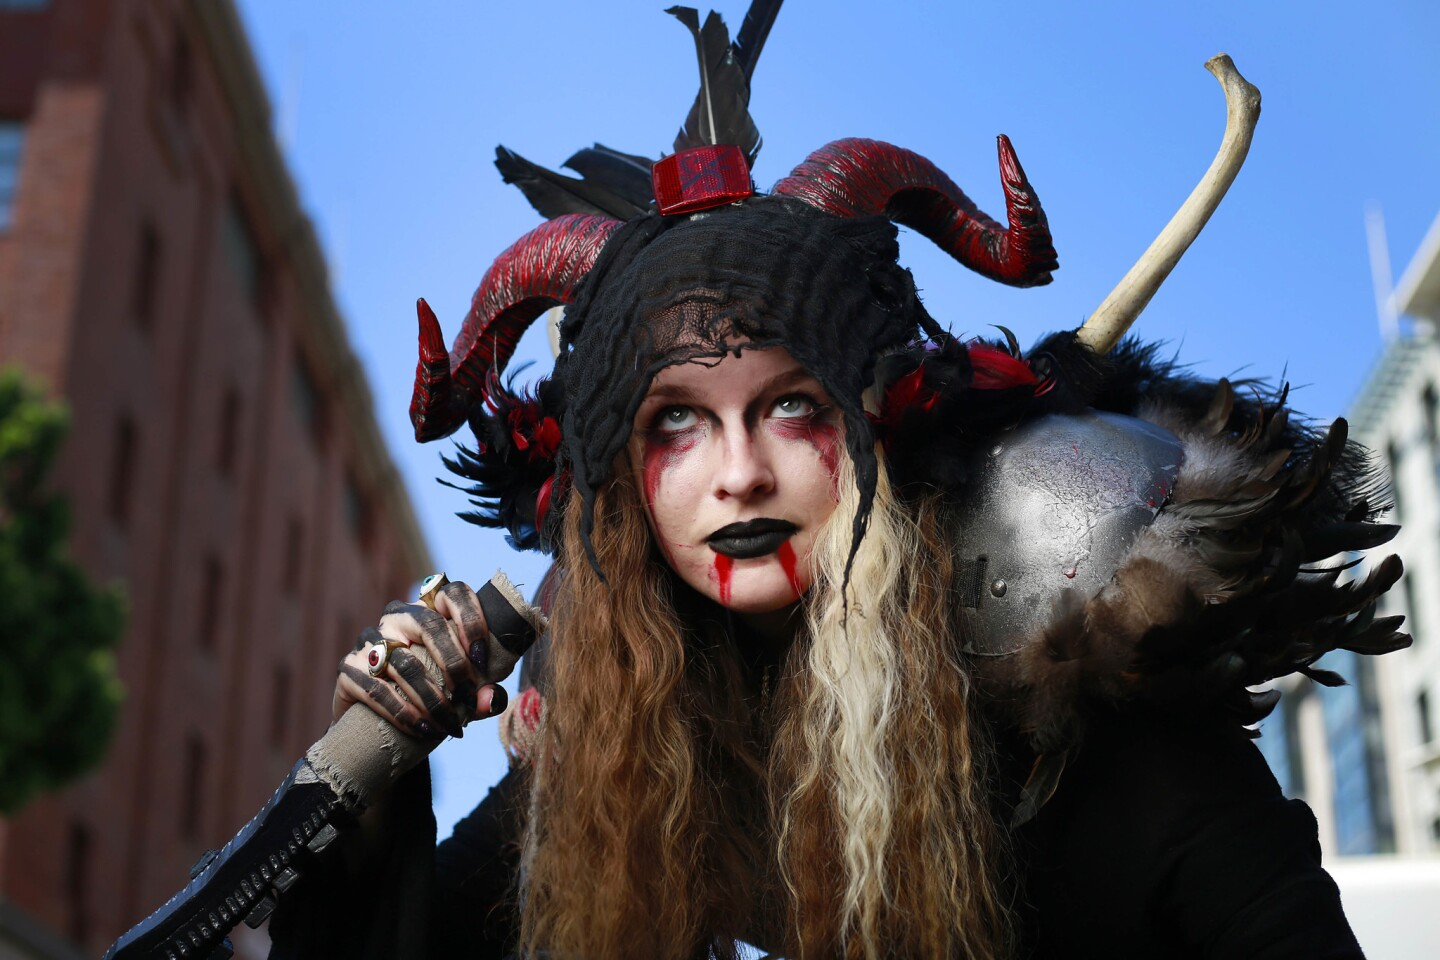 Emily Richardson of Riverside dressed as a Apocalypse LARP character at Comic-Con in San Diego on July 21, 2017. (Photo by K.C. Alfred/The San Diego Union-Tribune)